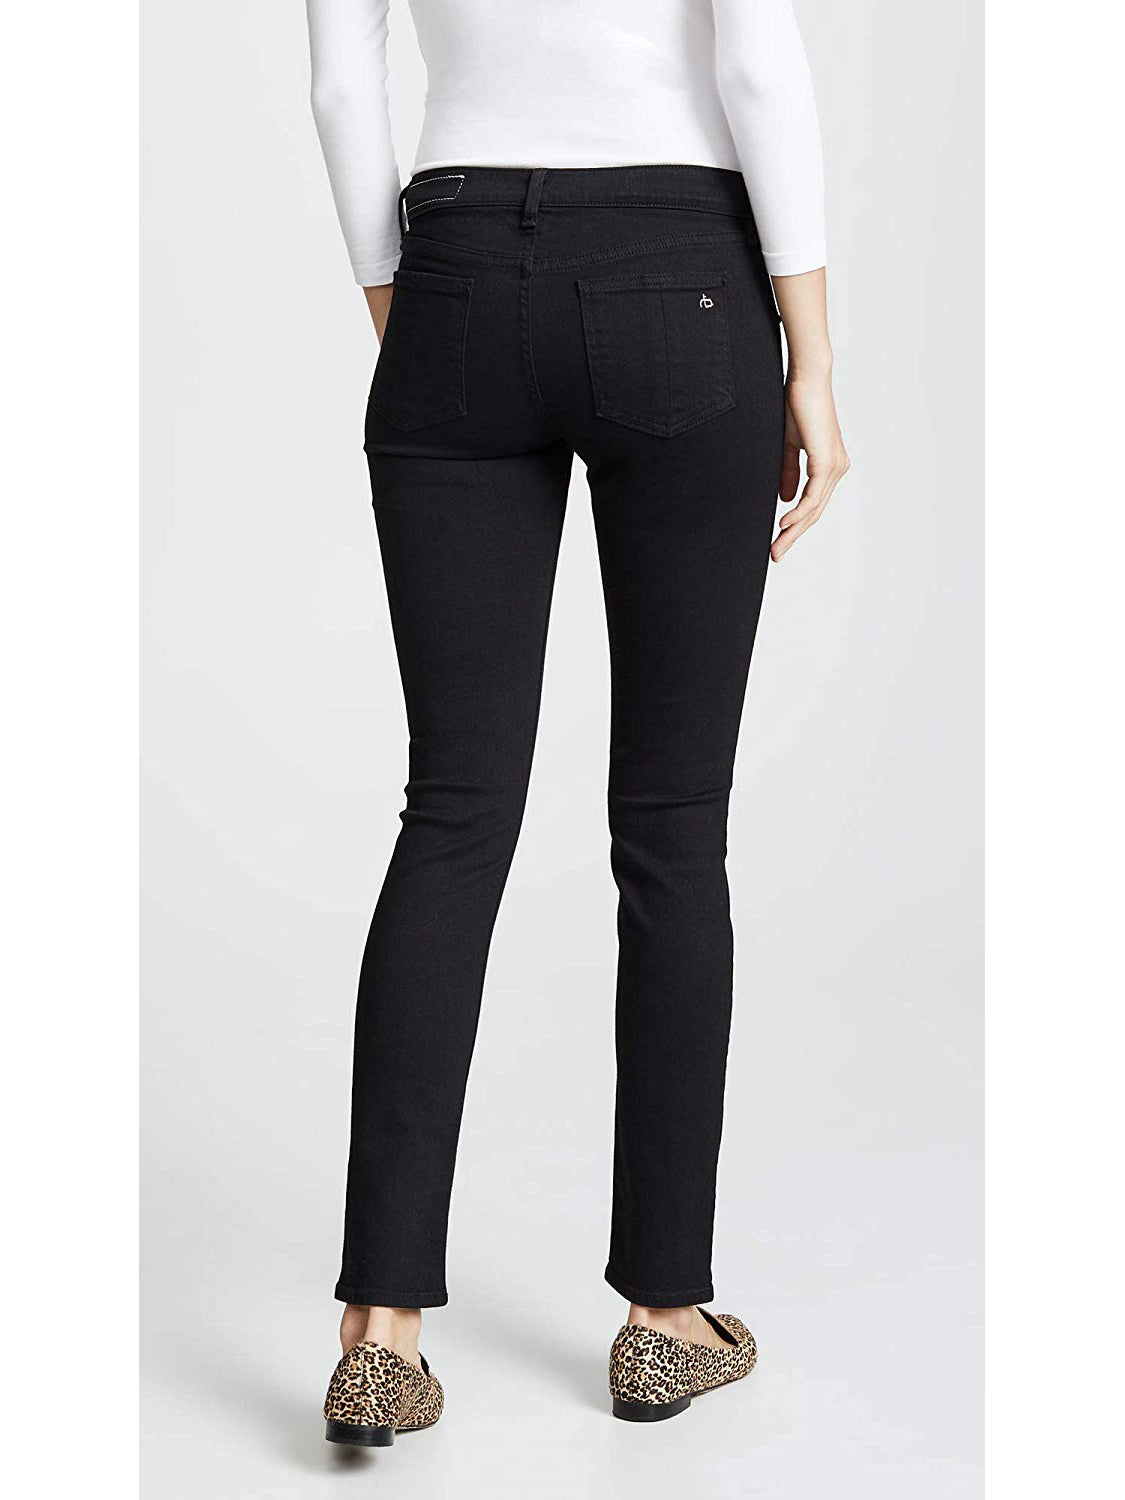 Rag & Bone / JEAN Skinny Maternity Jeans - Coal Black | TILDEN